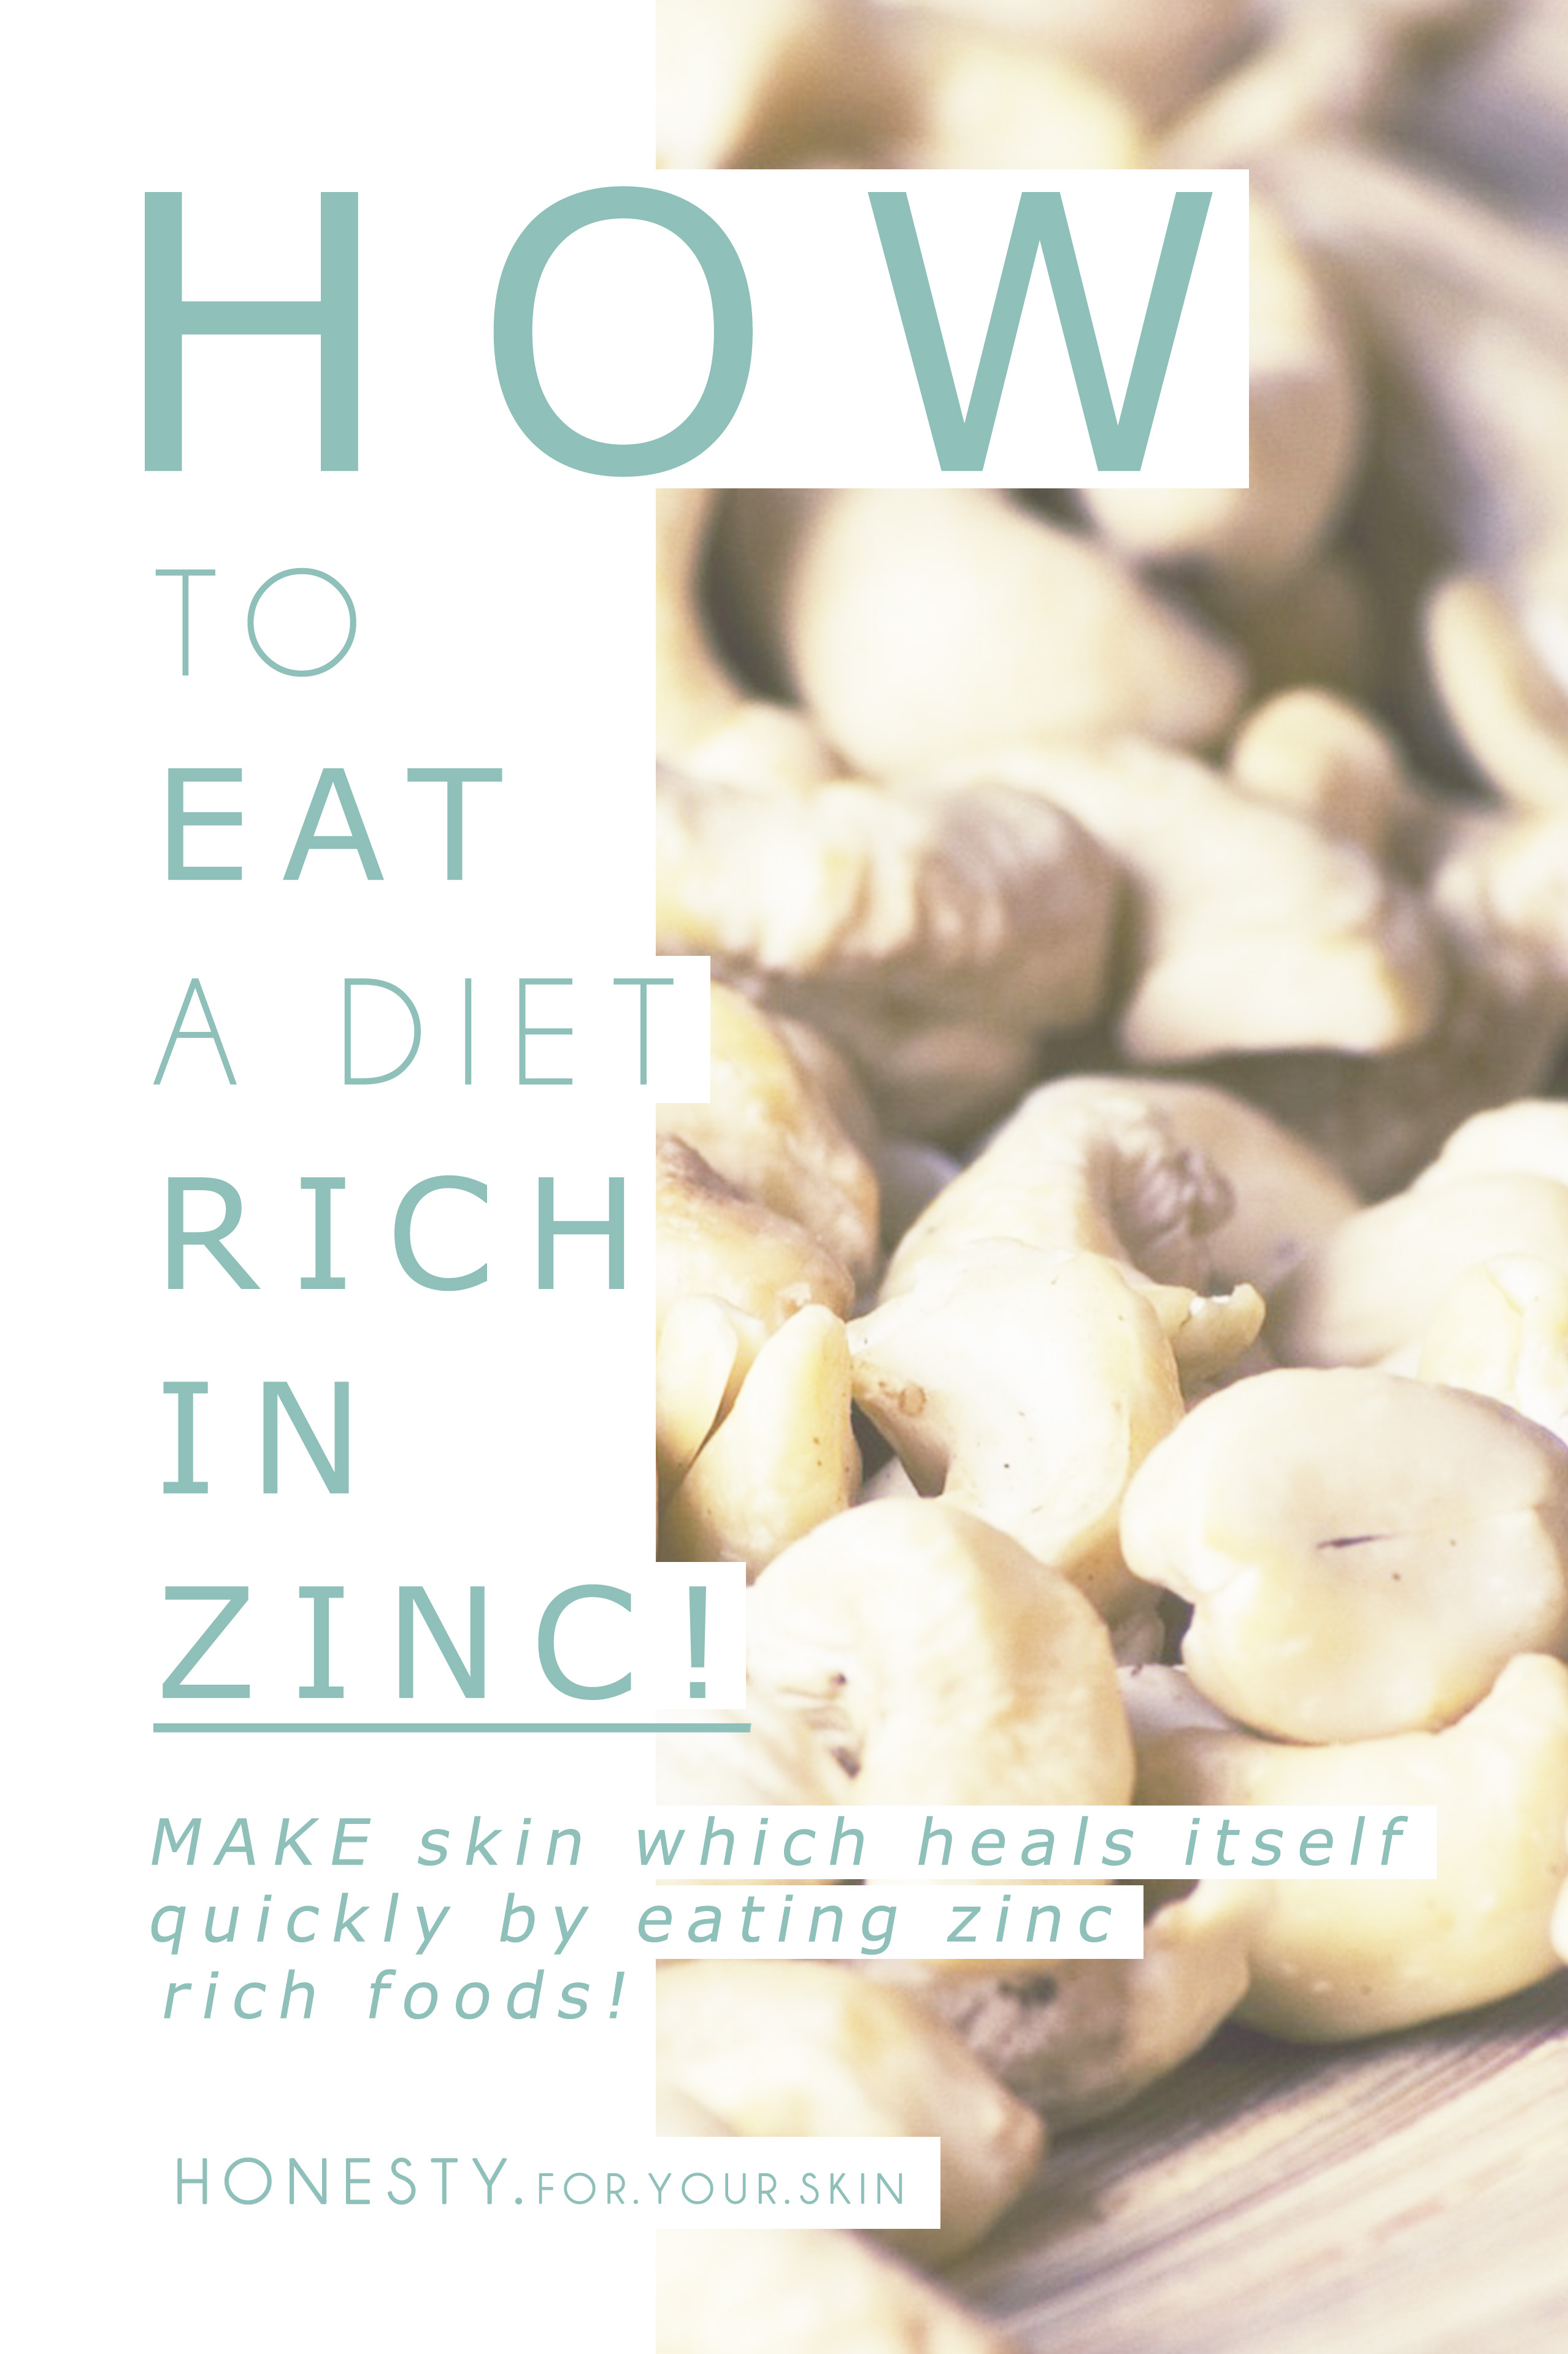 Zinc AND lots of other yummy minerals are SUPER important for HEALTHY SKIN! Zinc especially is needed to fight blemish's and spots PLUS wrinkles. This is were to find zinc in your food!